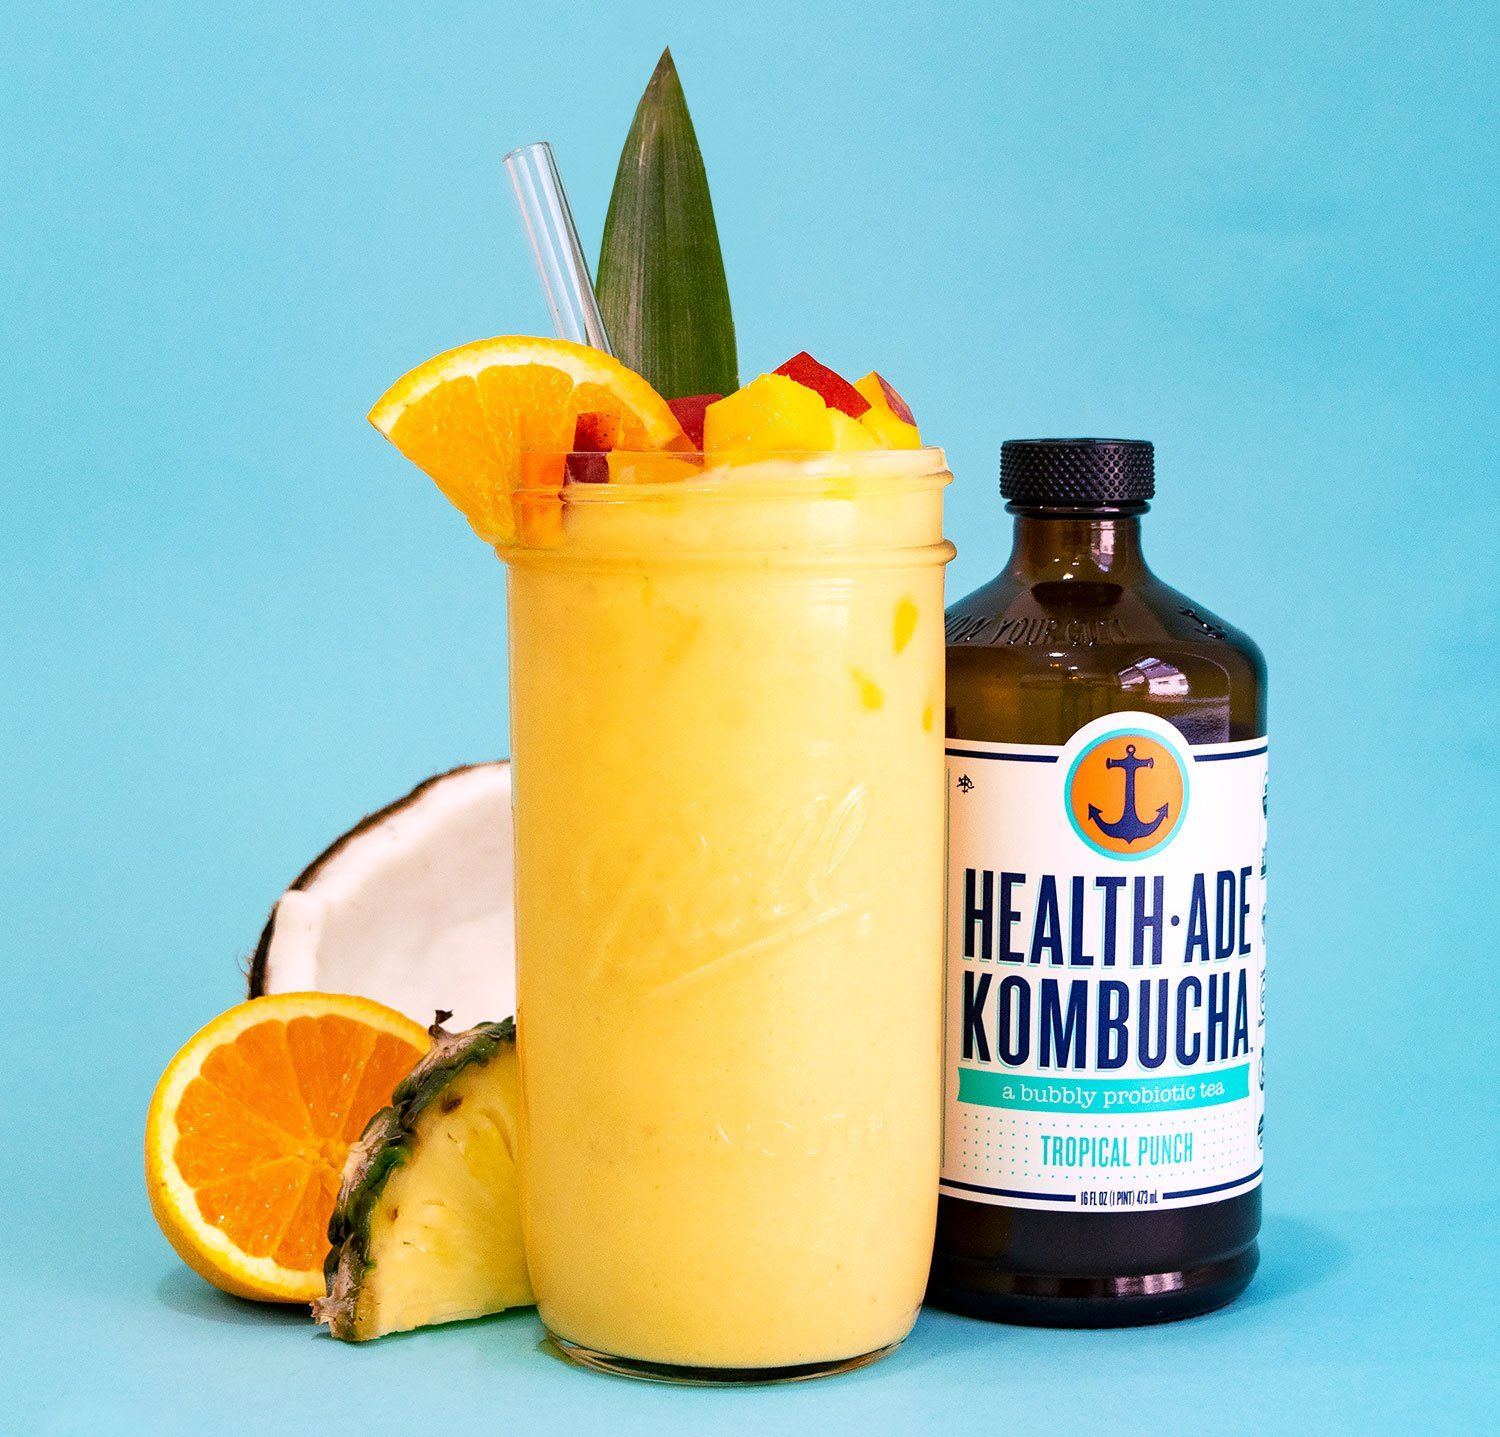 Summer Chillin': Health-Ade Kombucha Tropical CBD Smoothie